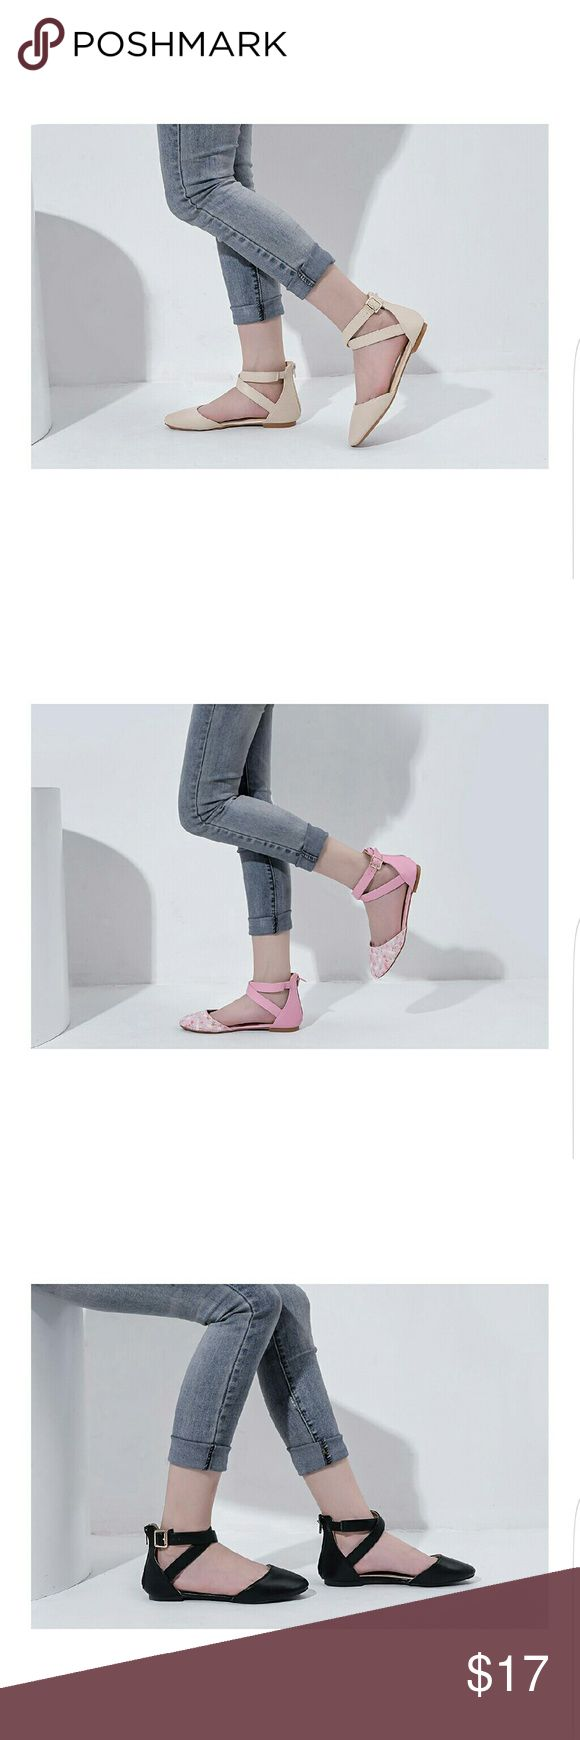 Kay New Fashion Womens Pointed Toe Ankle D-orsay Pointed Toe floral print upper Create your chic style , Premium microsuede uppers highlight pointed toes and a t-strap design connects to caged back heels. Padded insoles create a comfortable fit to finish the design Mila Lady Shoes Flats & Loafers